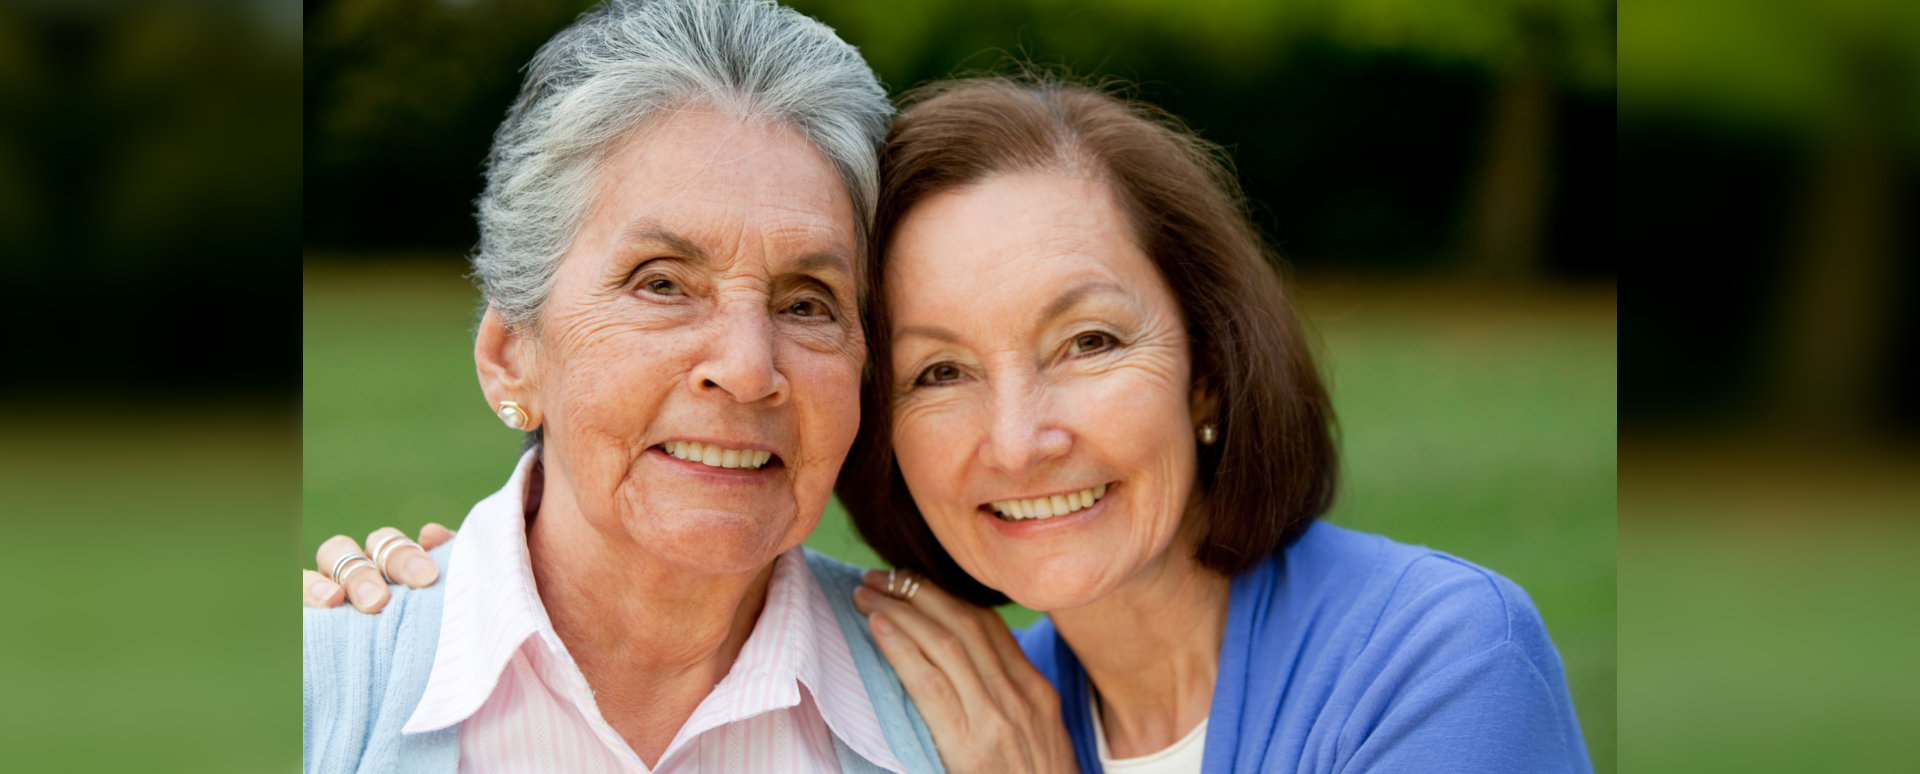 Portrait of an elder mother and daughter smiling outdoors